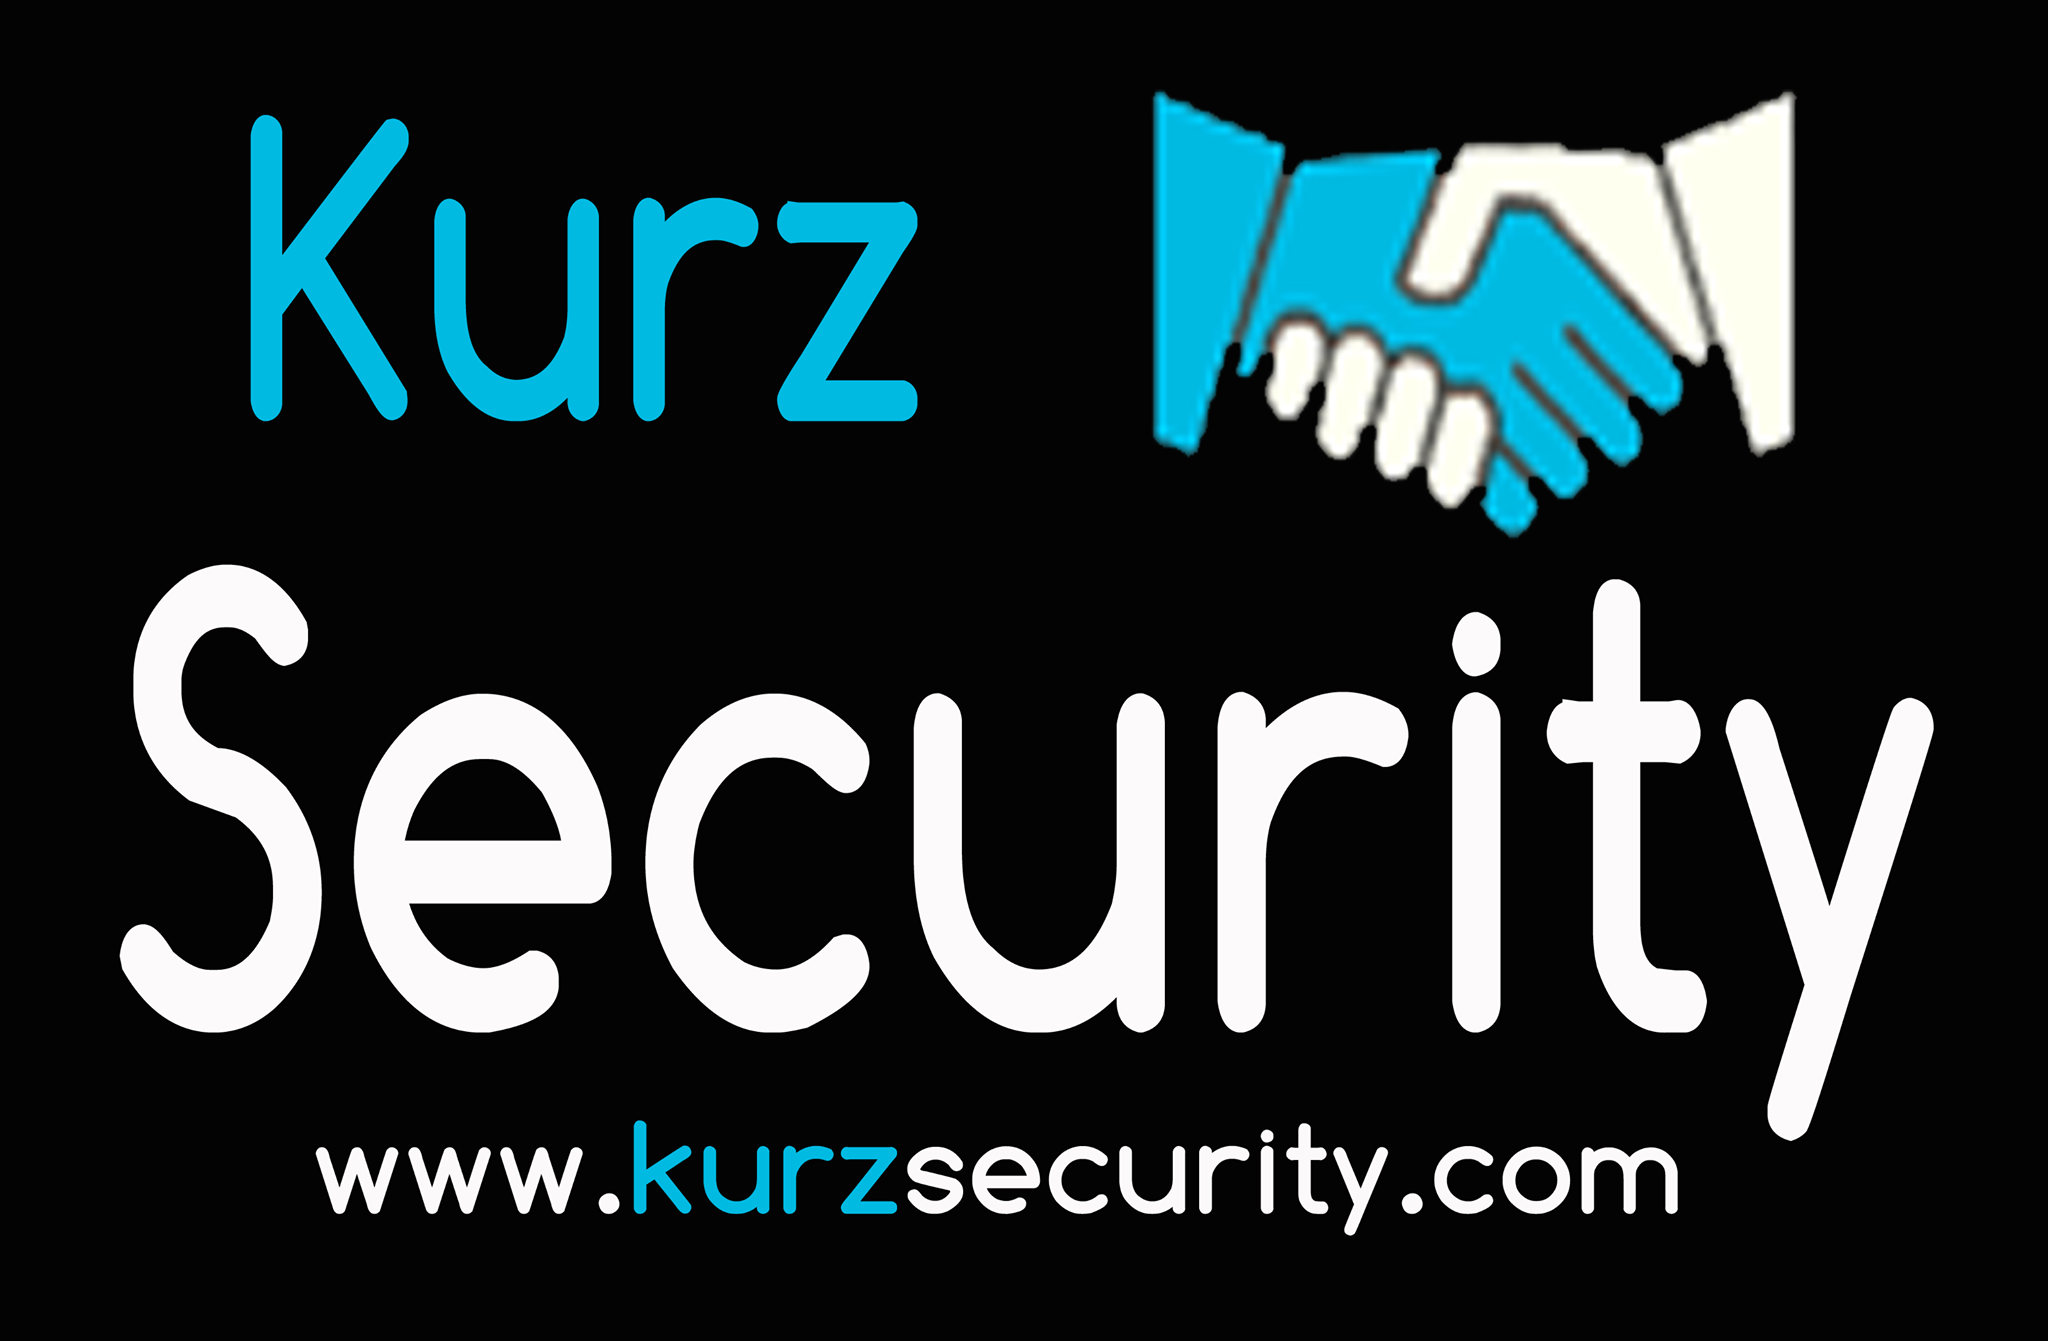 Kurz Security